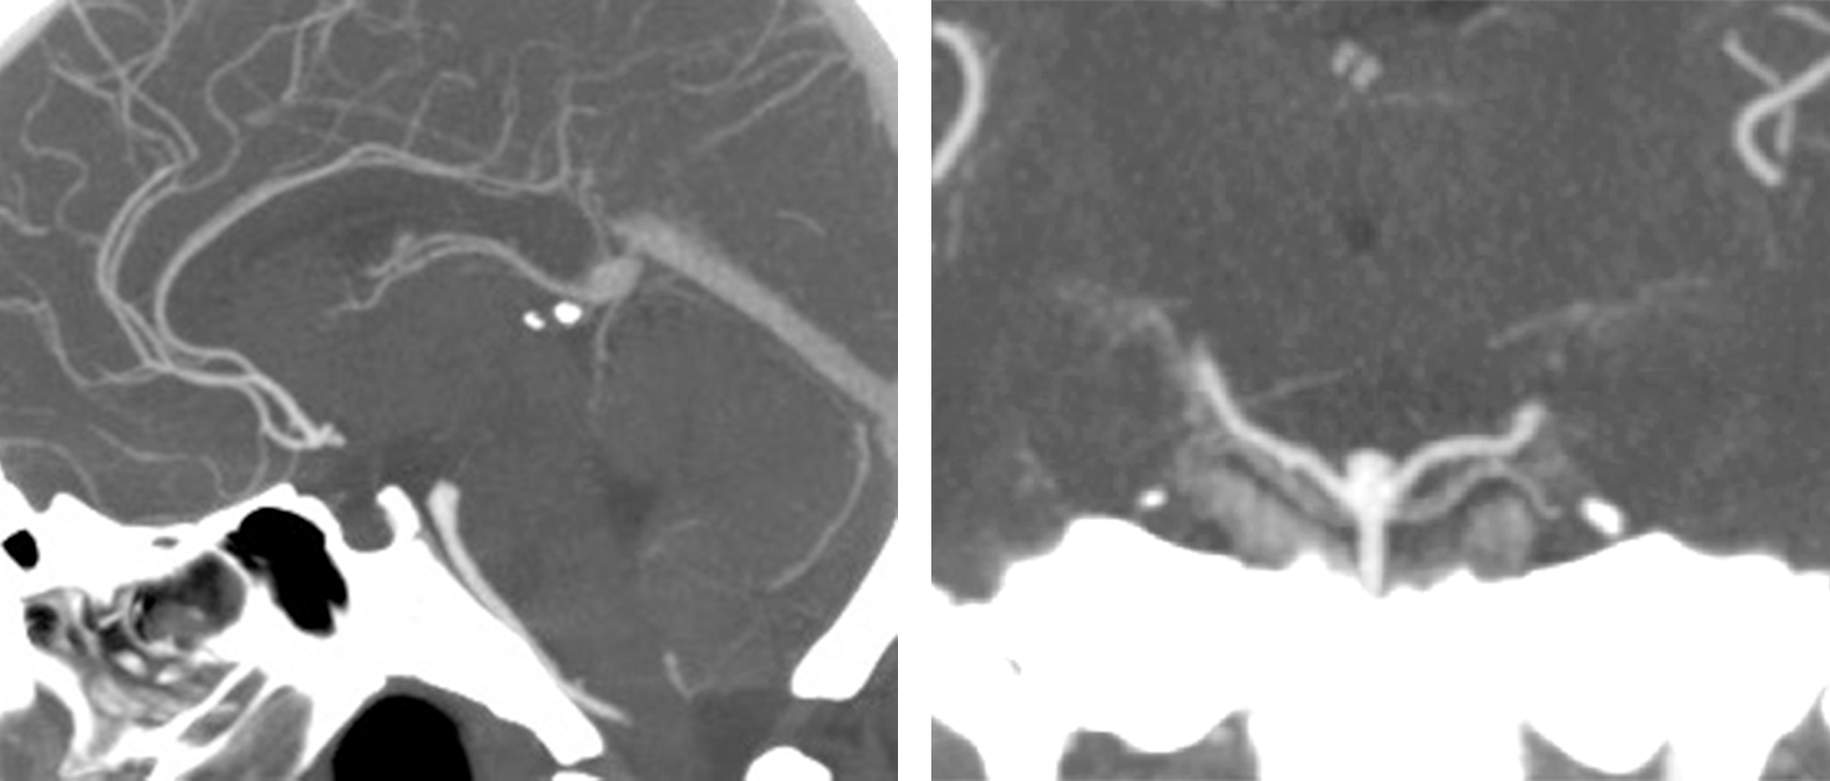 Figure 1: A low-lying basilar bifurcation aneurysm with its neck located up to 1cm below the dorsum sella can be exposed via the subtemporal route.